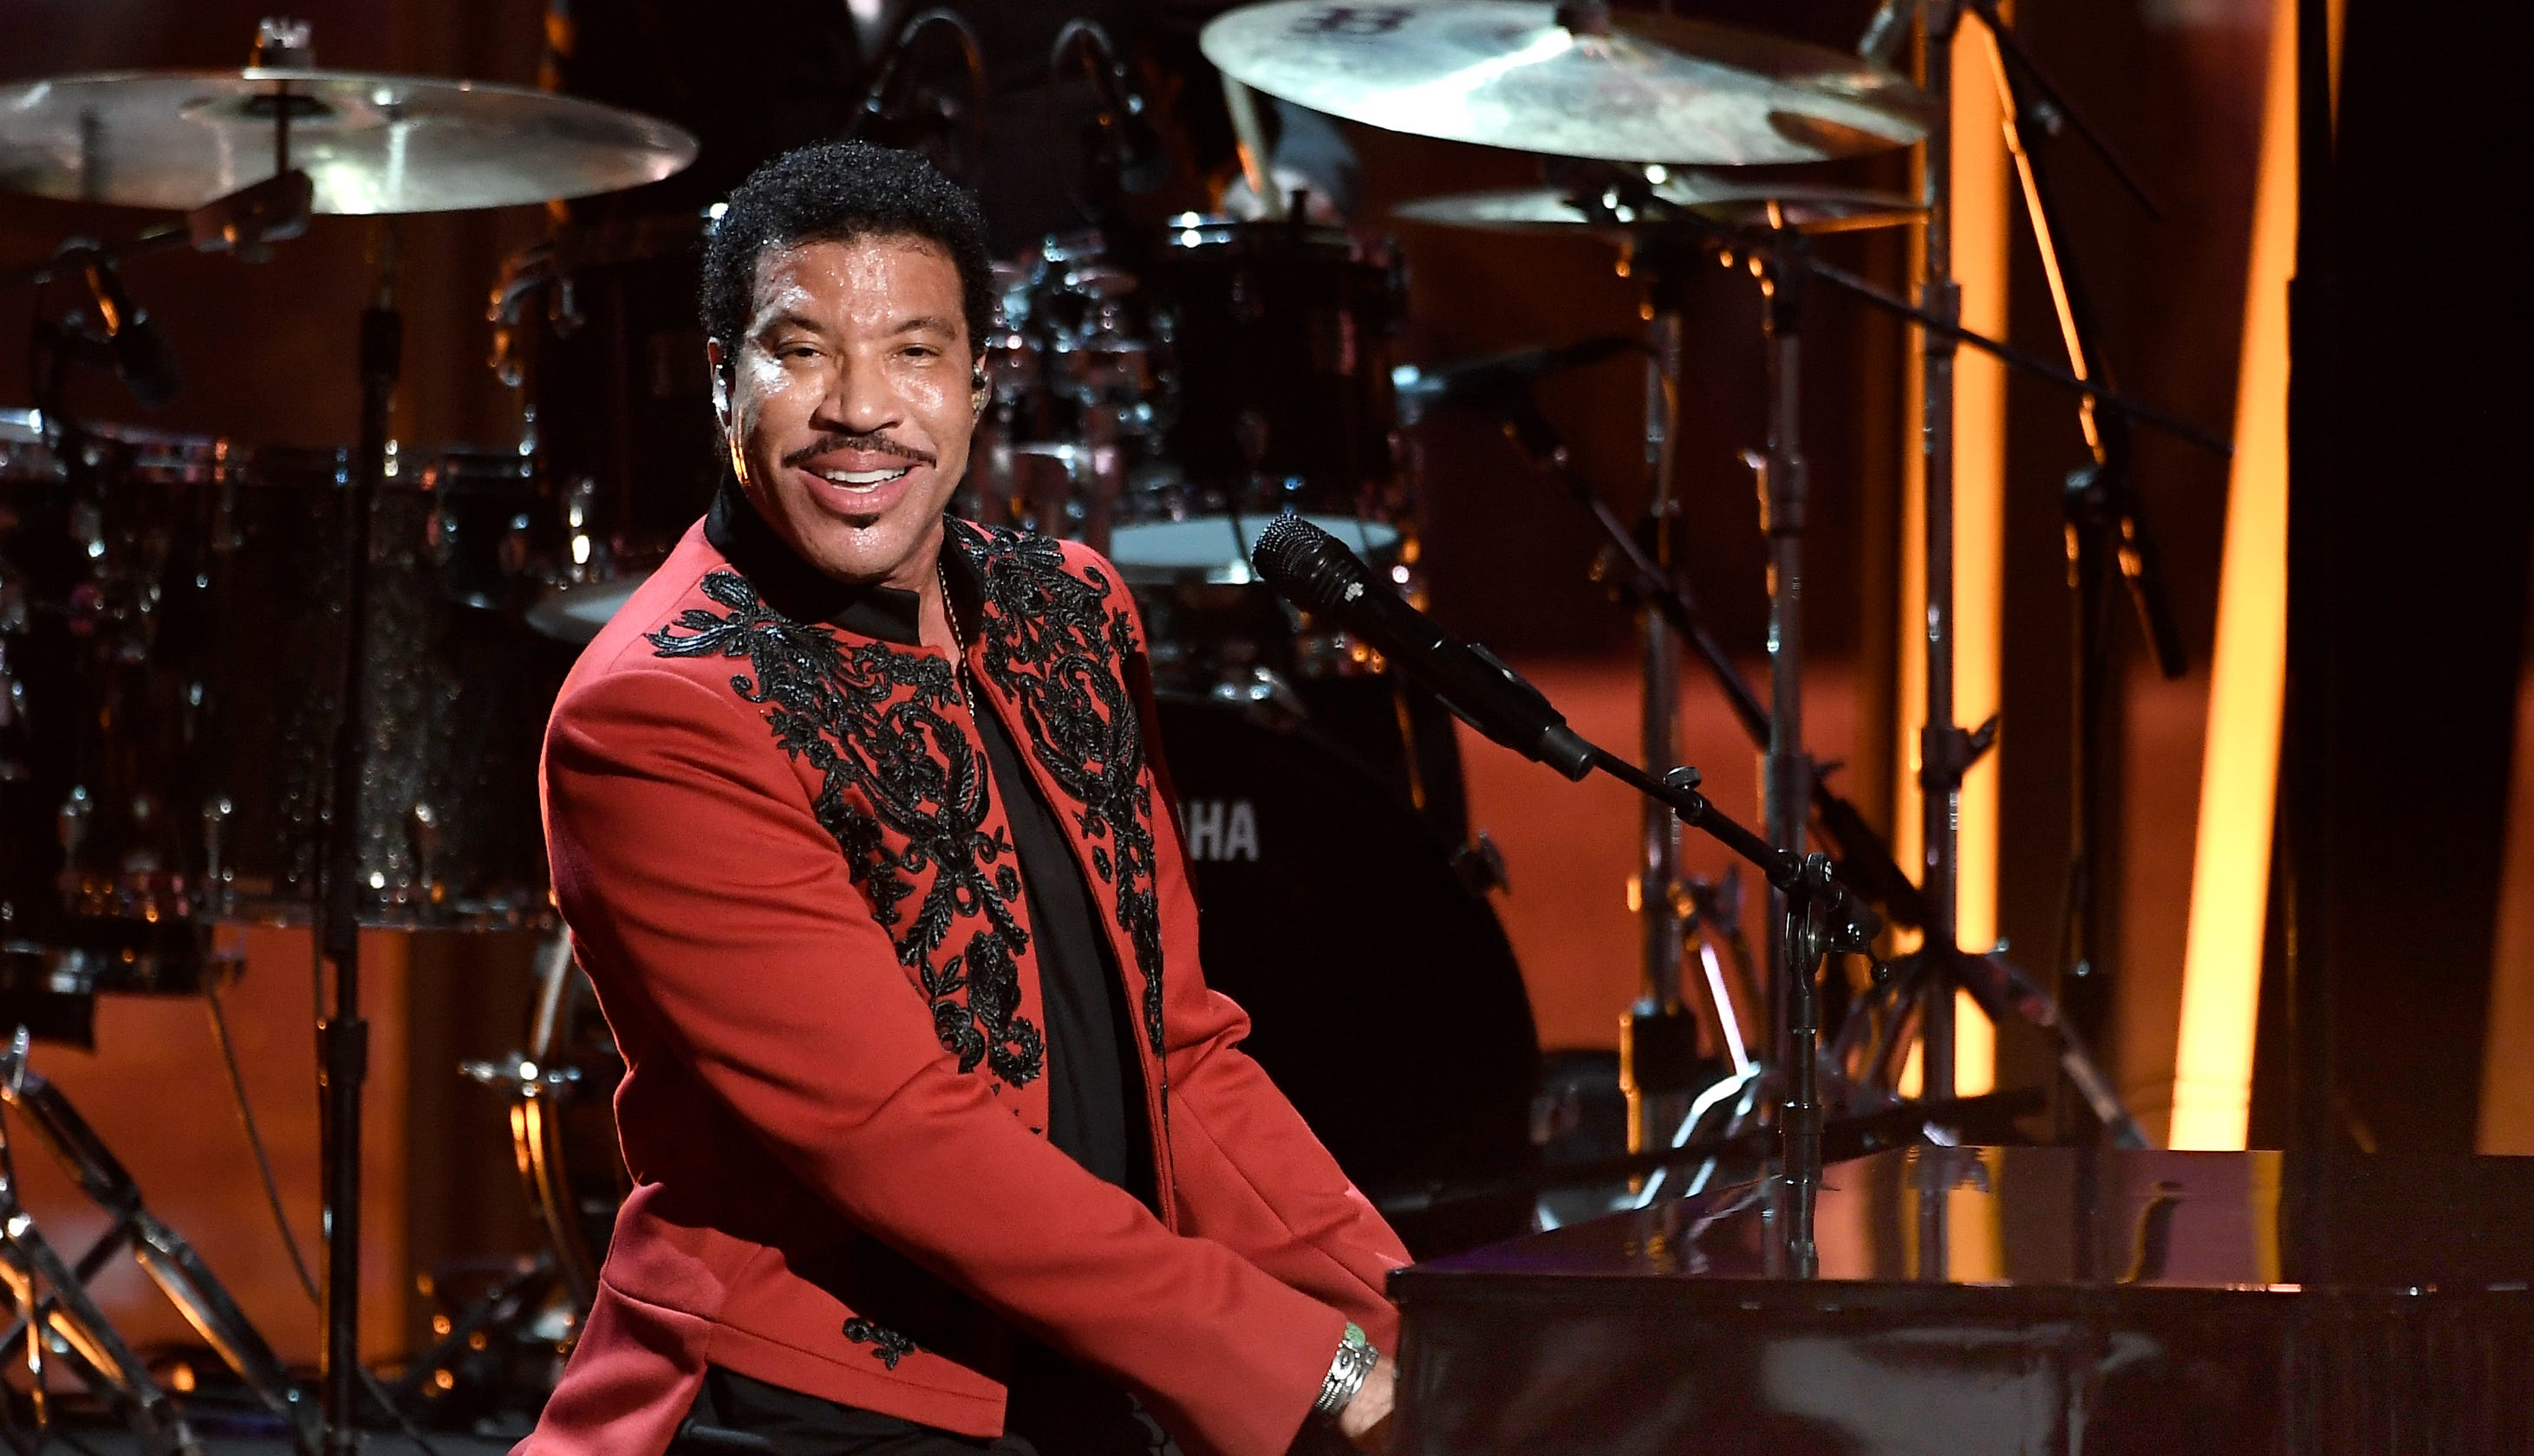 Lionel Richie | Discography & Songs | Discogs